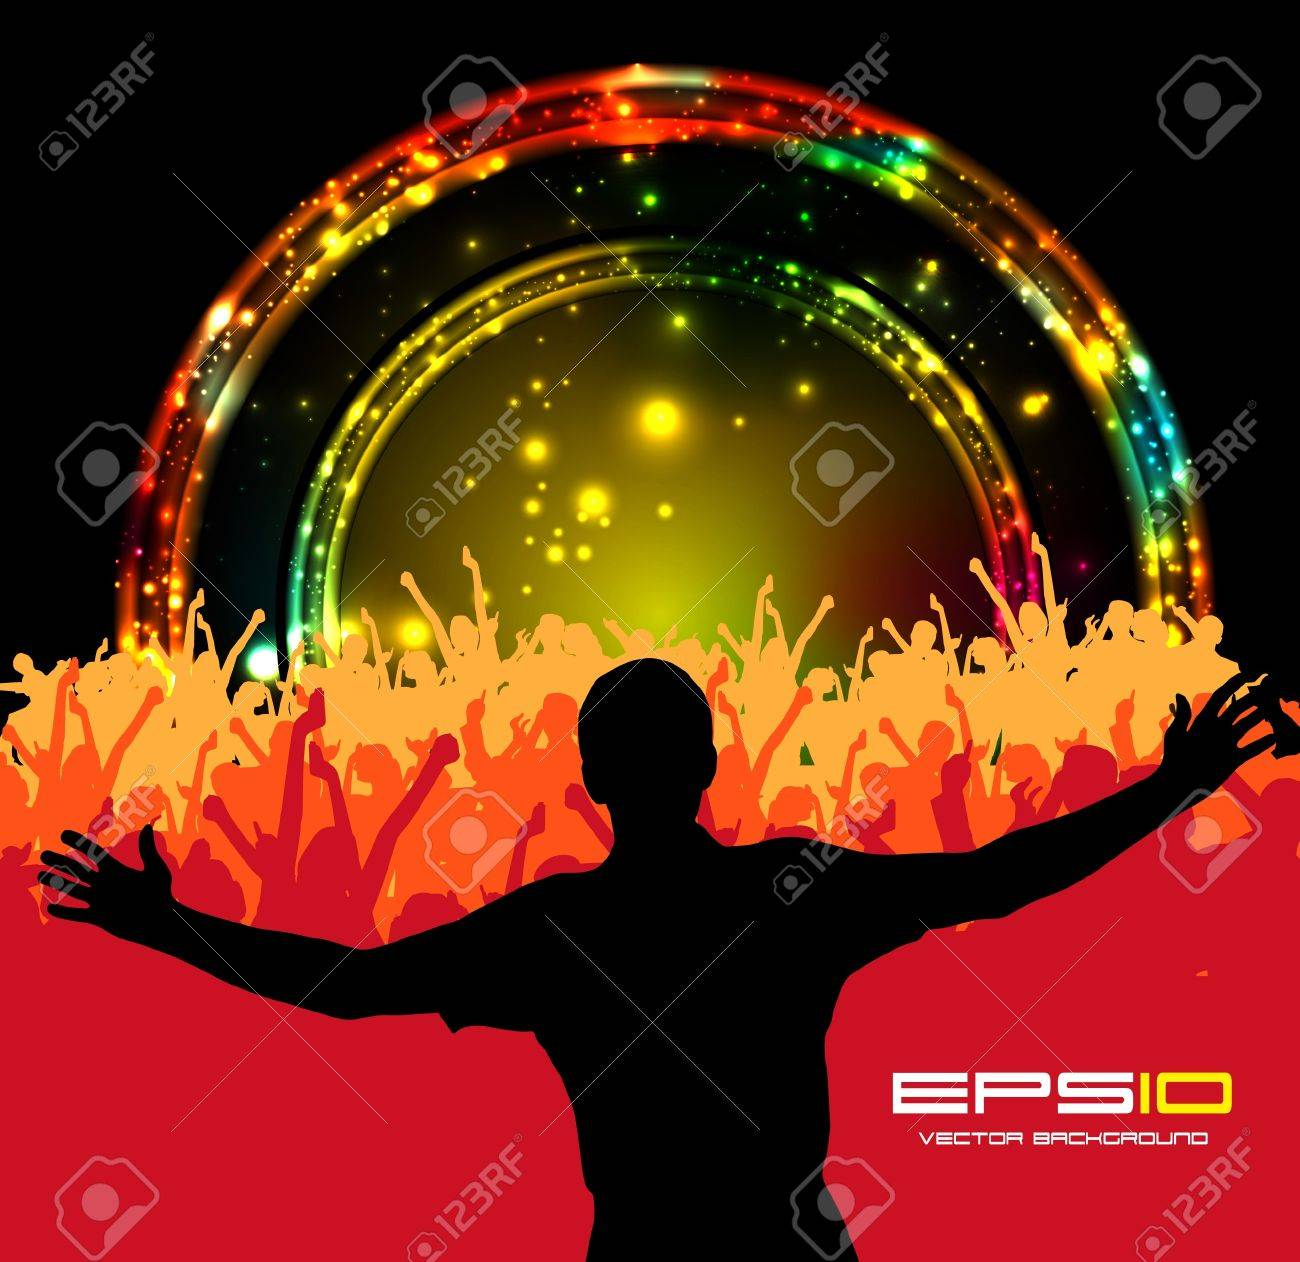 Music Event Background Vector Eps10 Illustration Royalty Free